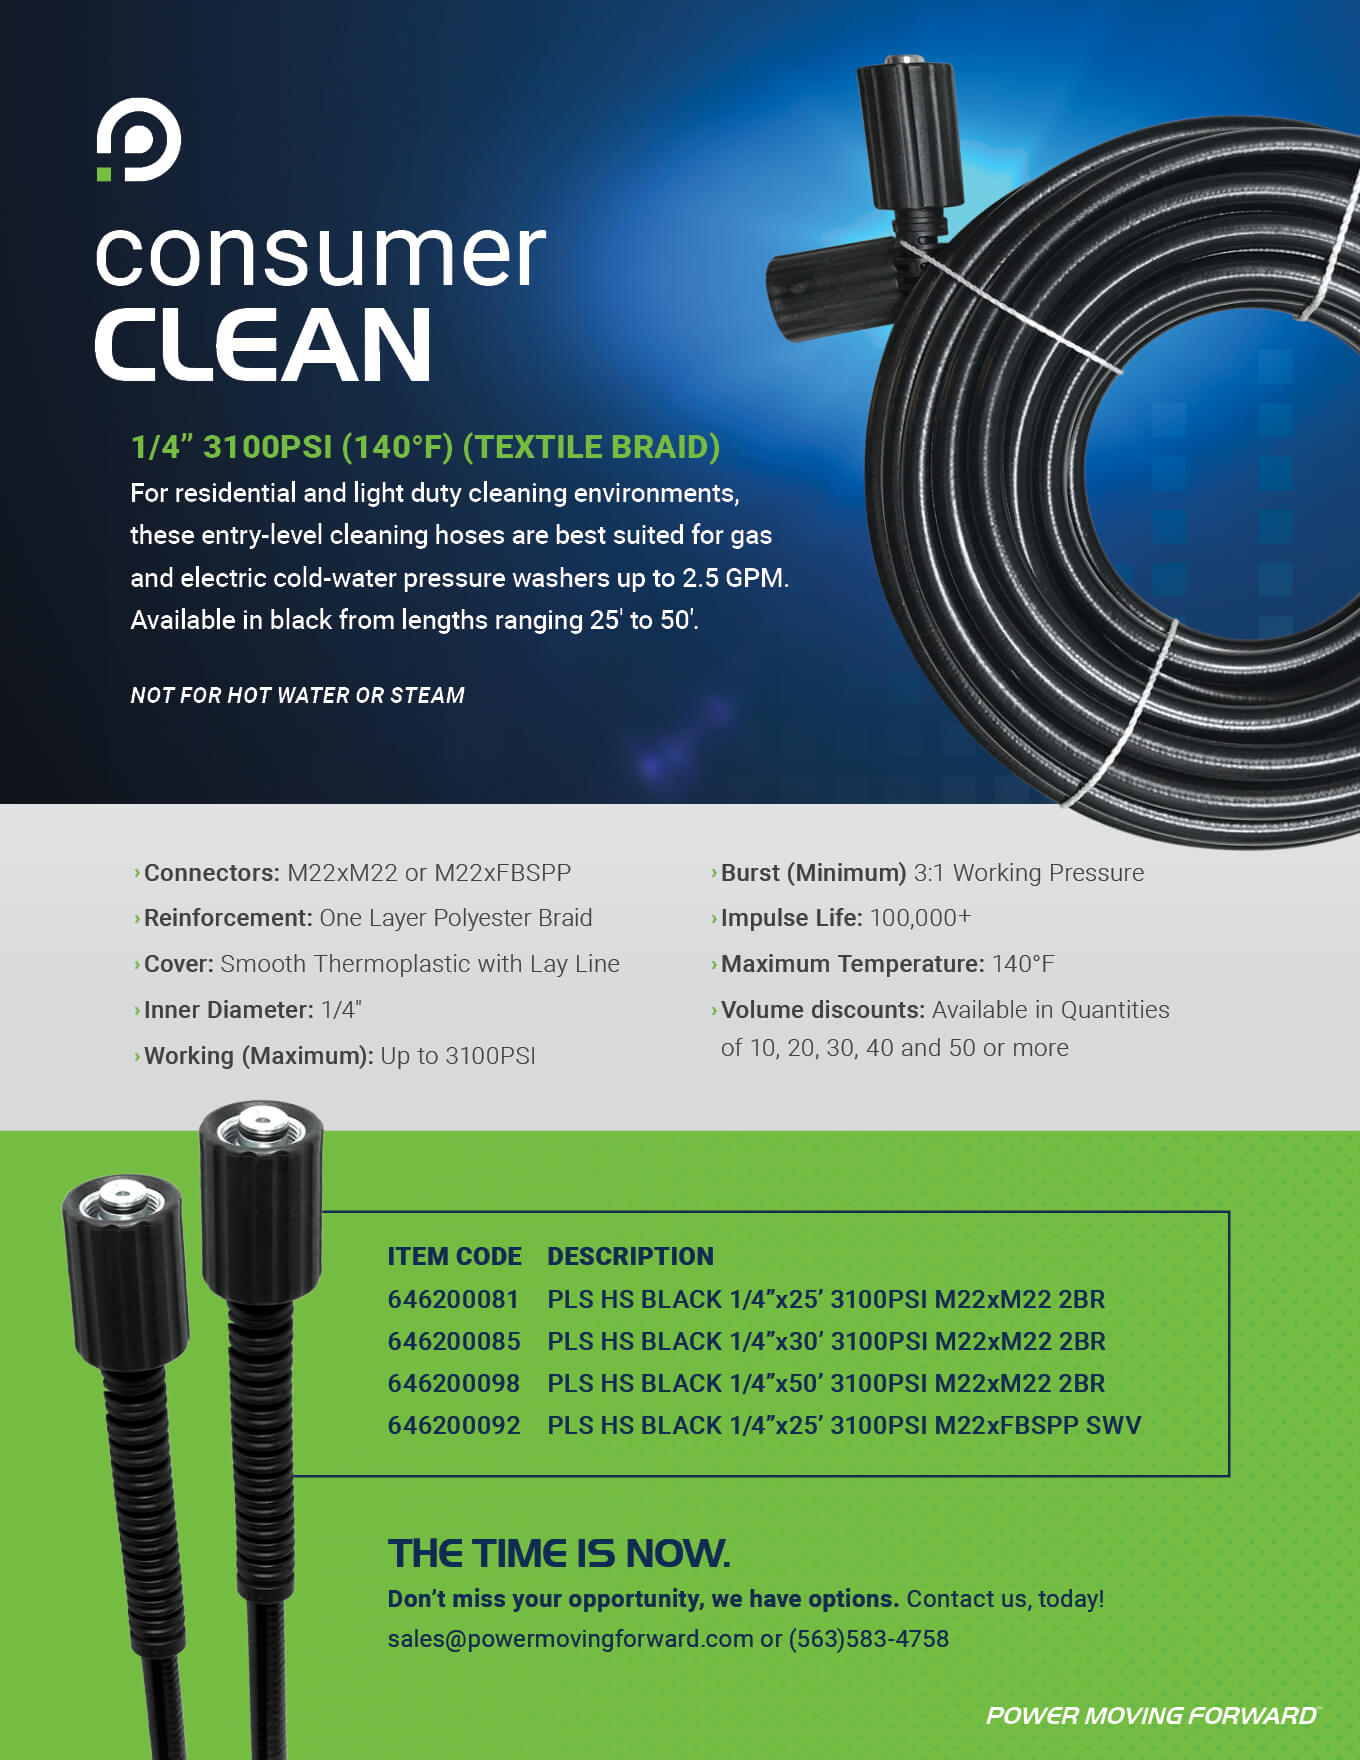 Cleaning Hose for Residential and Light Applications